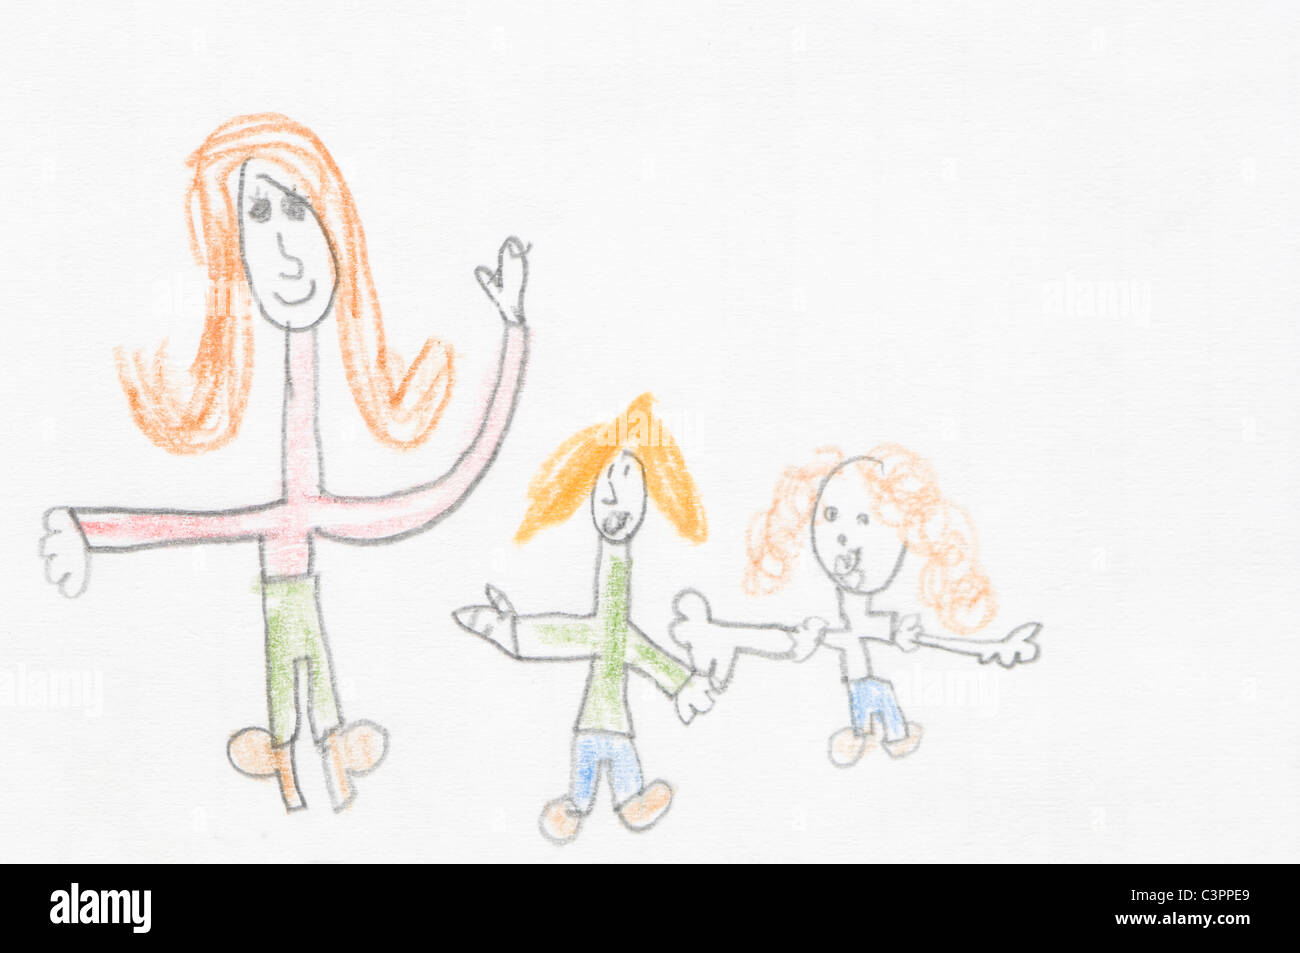 Germany, Munich, Child's drawing in exercise book - Stock Image